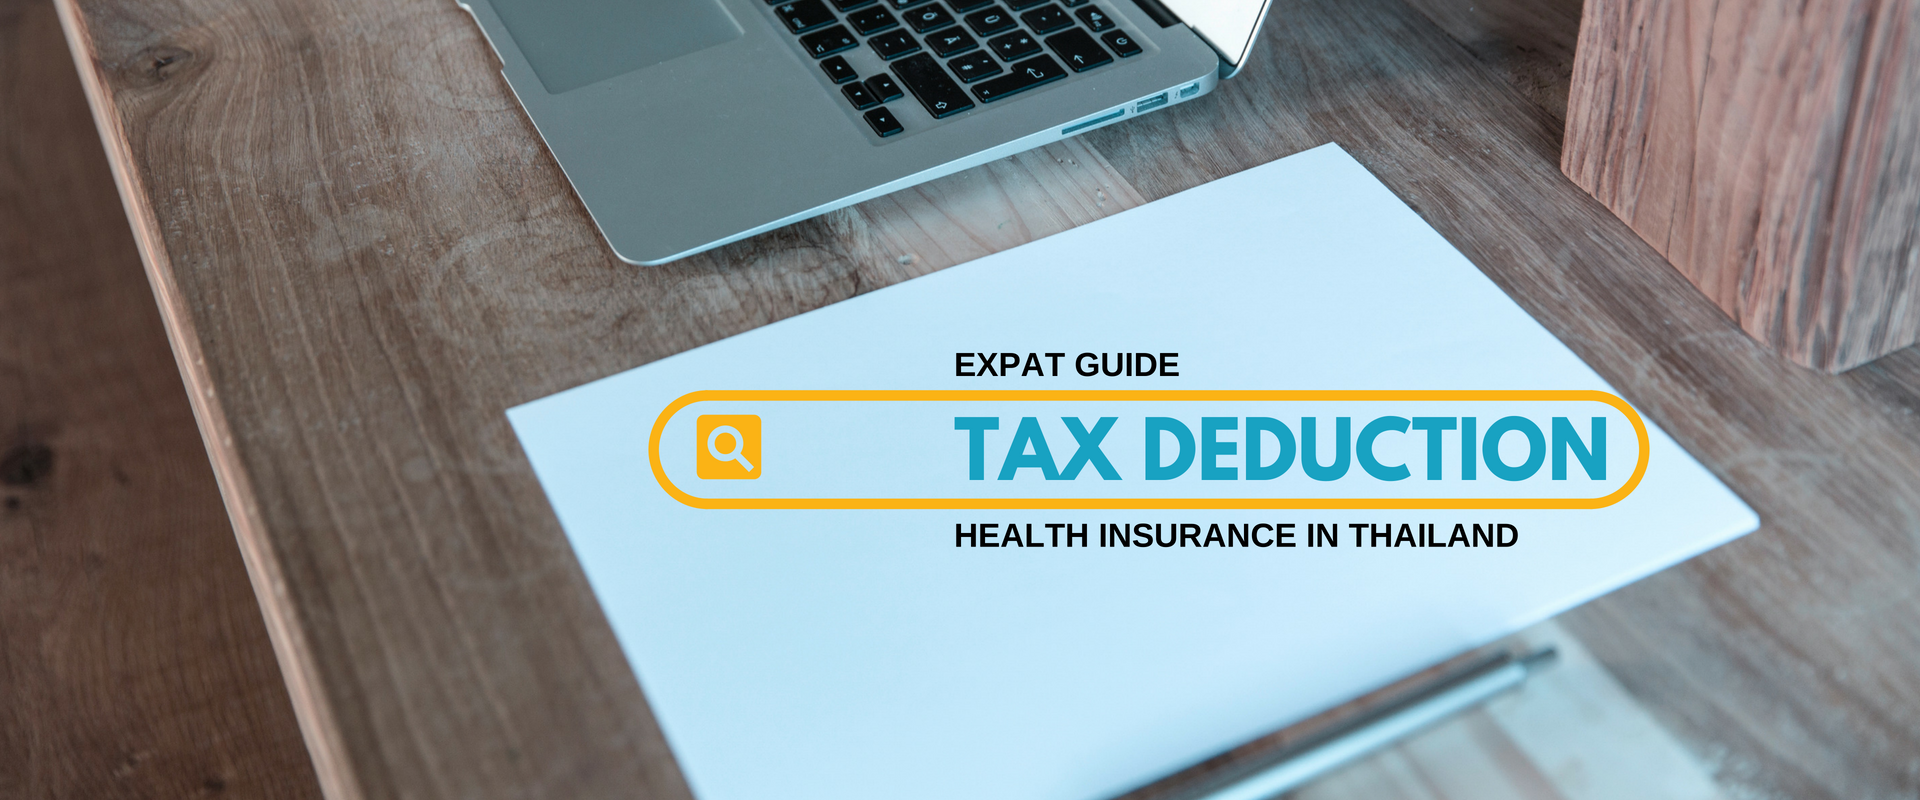 Tax deduction - banner